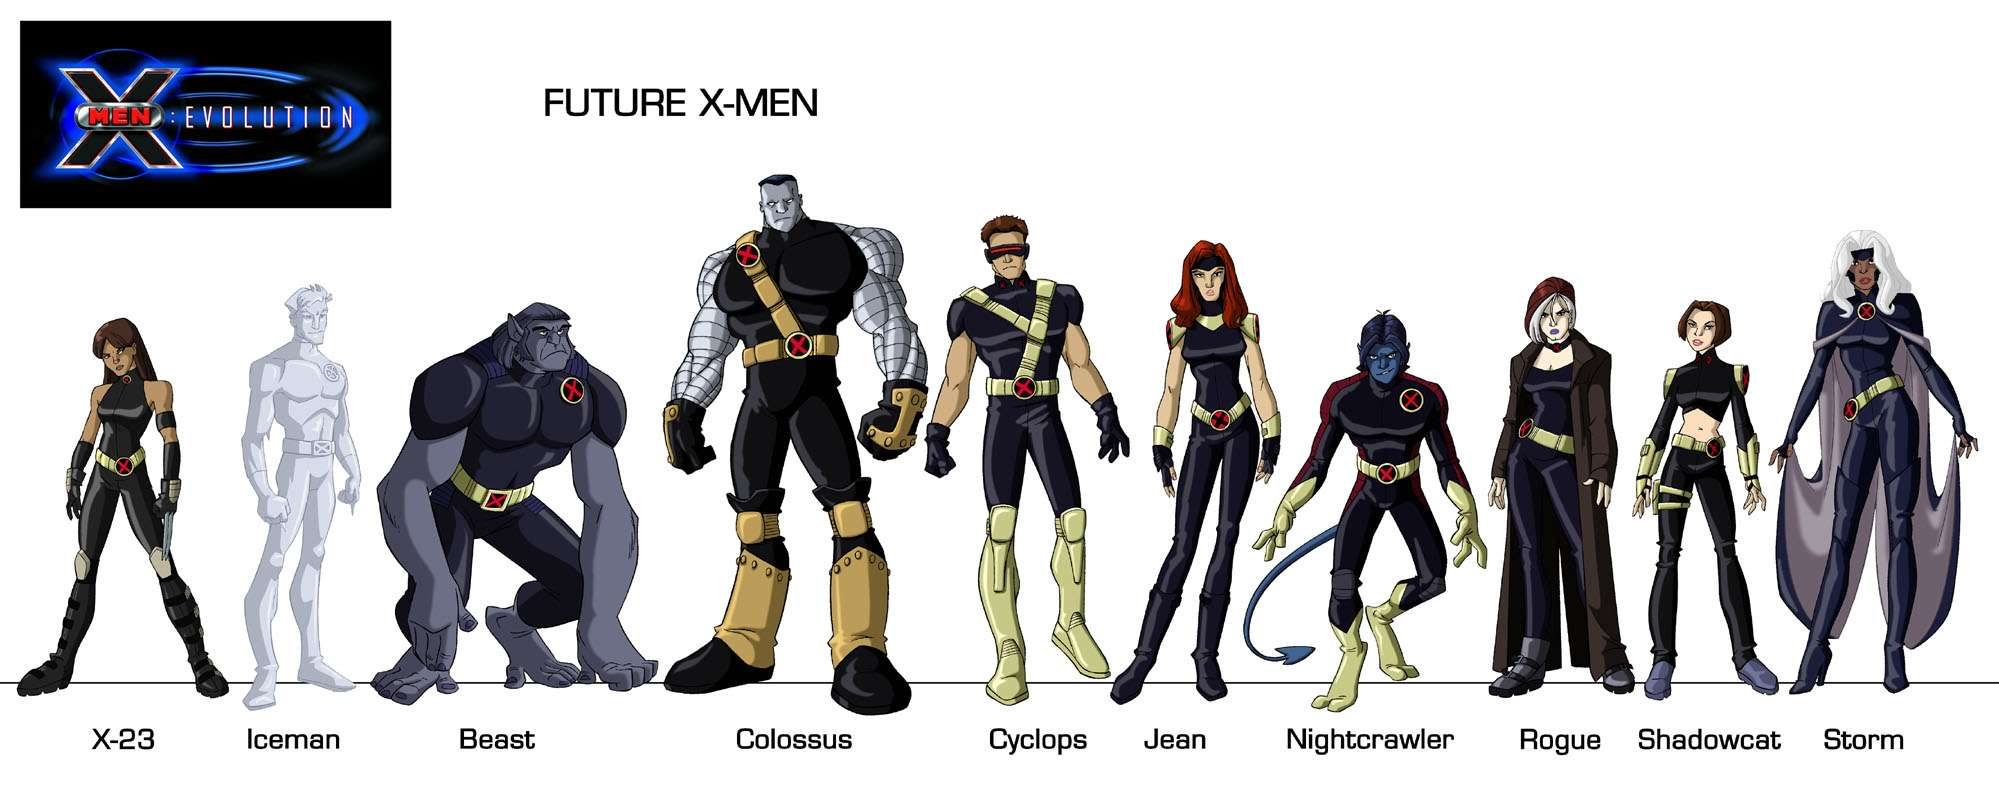 Future X-Men Evolution | Xmen Series | X men evolution, X ...X Men Evolution Villains